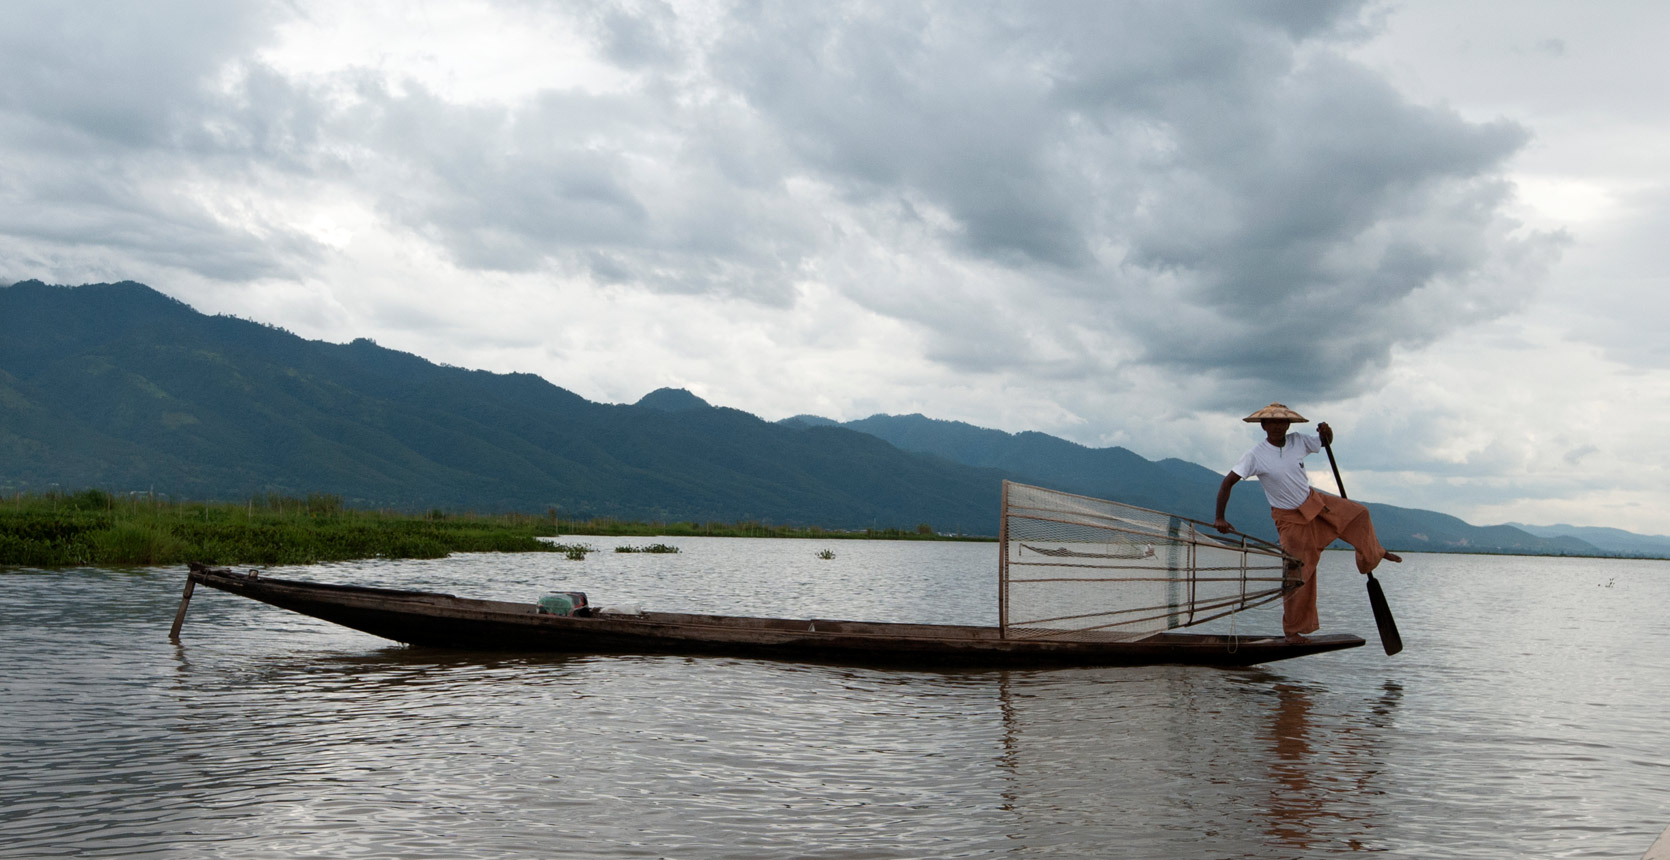 Leg rowing fisherman from the Intha people, standing on boat with cylindrical net and demonstrating leg rowing position, Inle lake, Shan state.